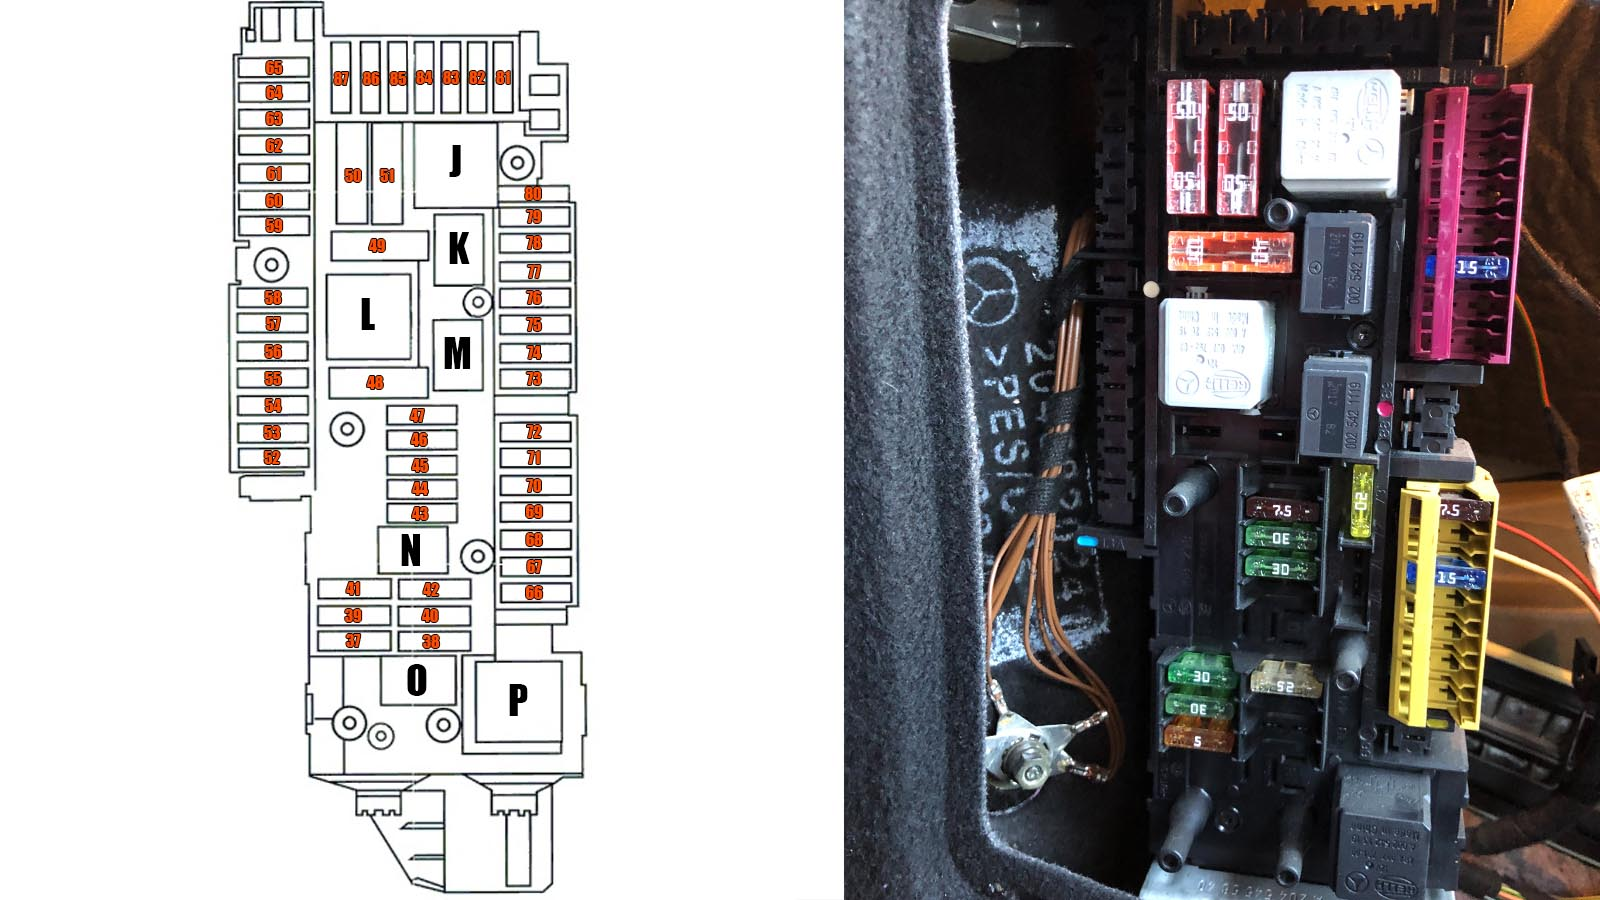 mercedes-benz c-class w204 (2008-2014) fuses and relay diagram  tutoriale din service